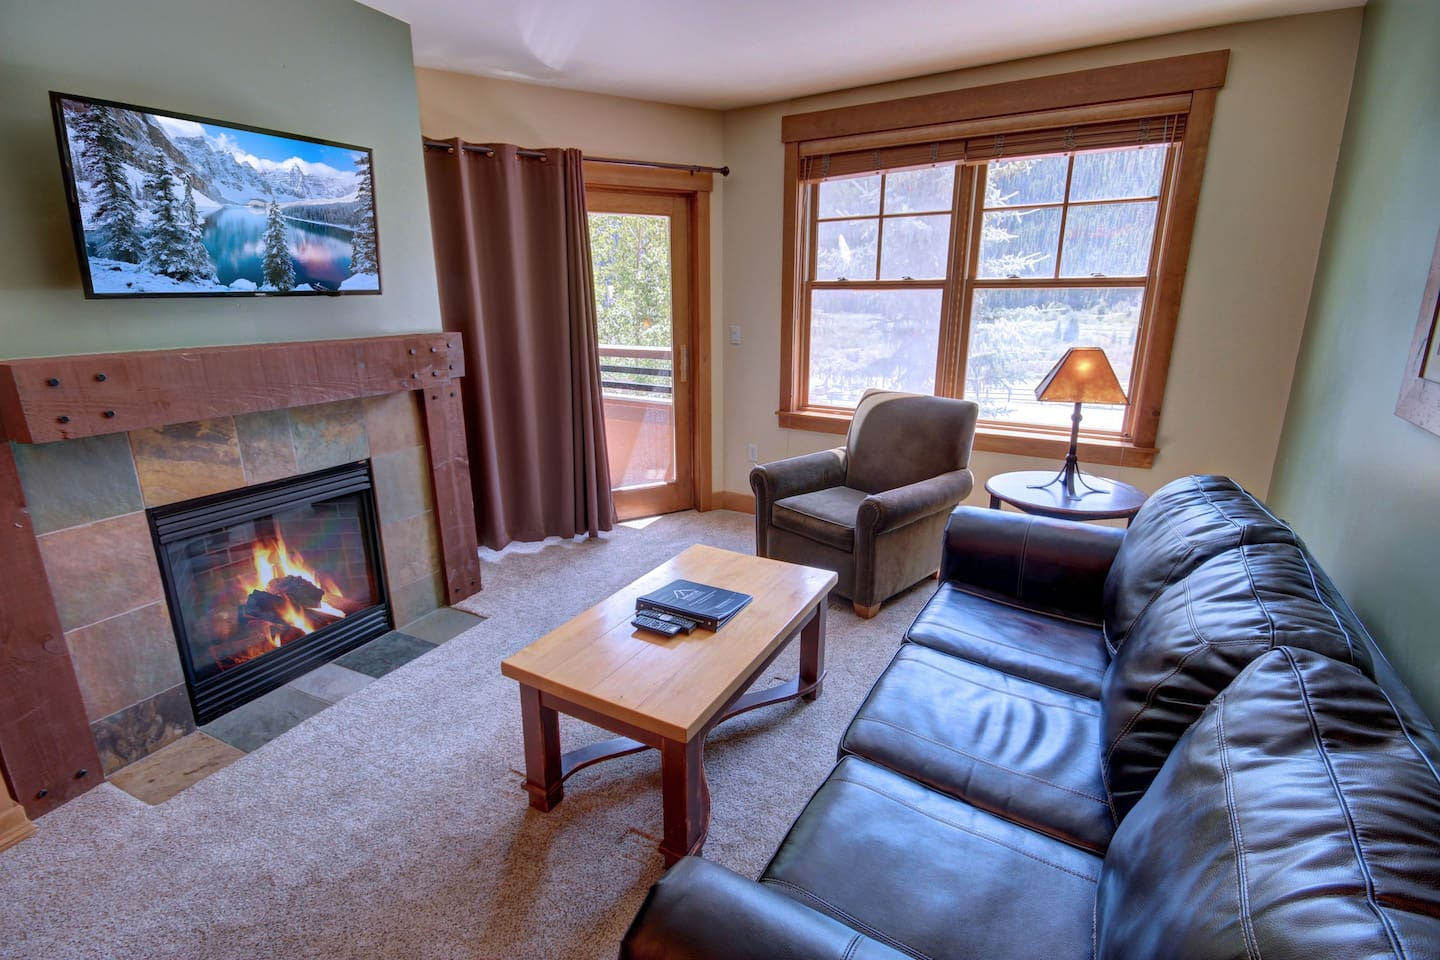 A living room with lots of natural lighting and a TV and fireplace for cold days